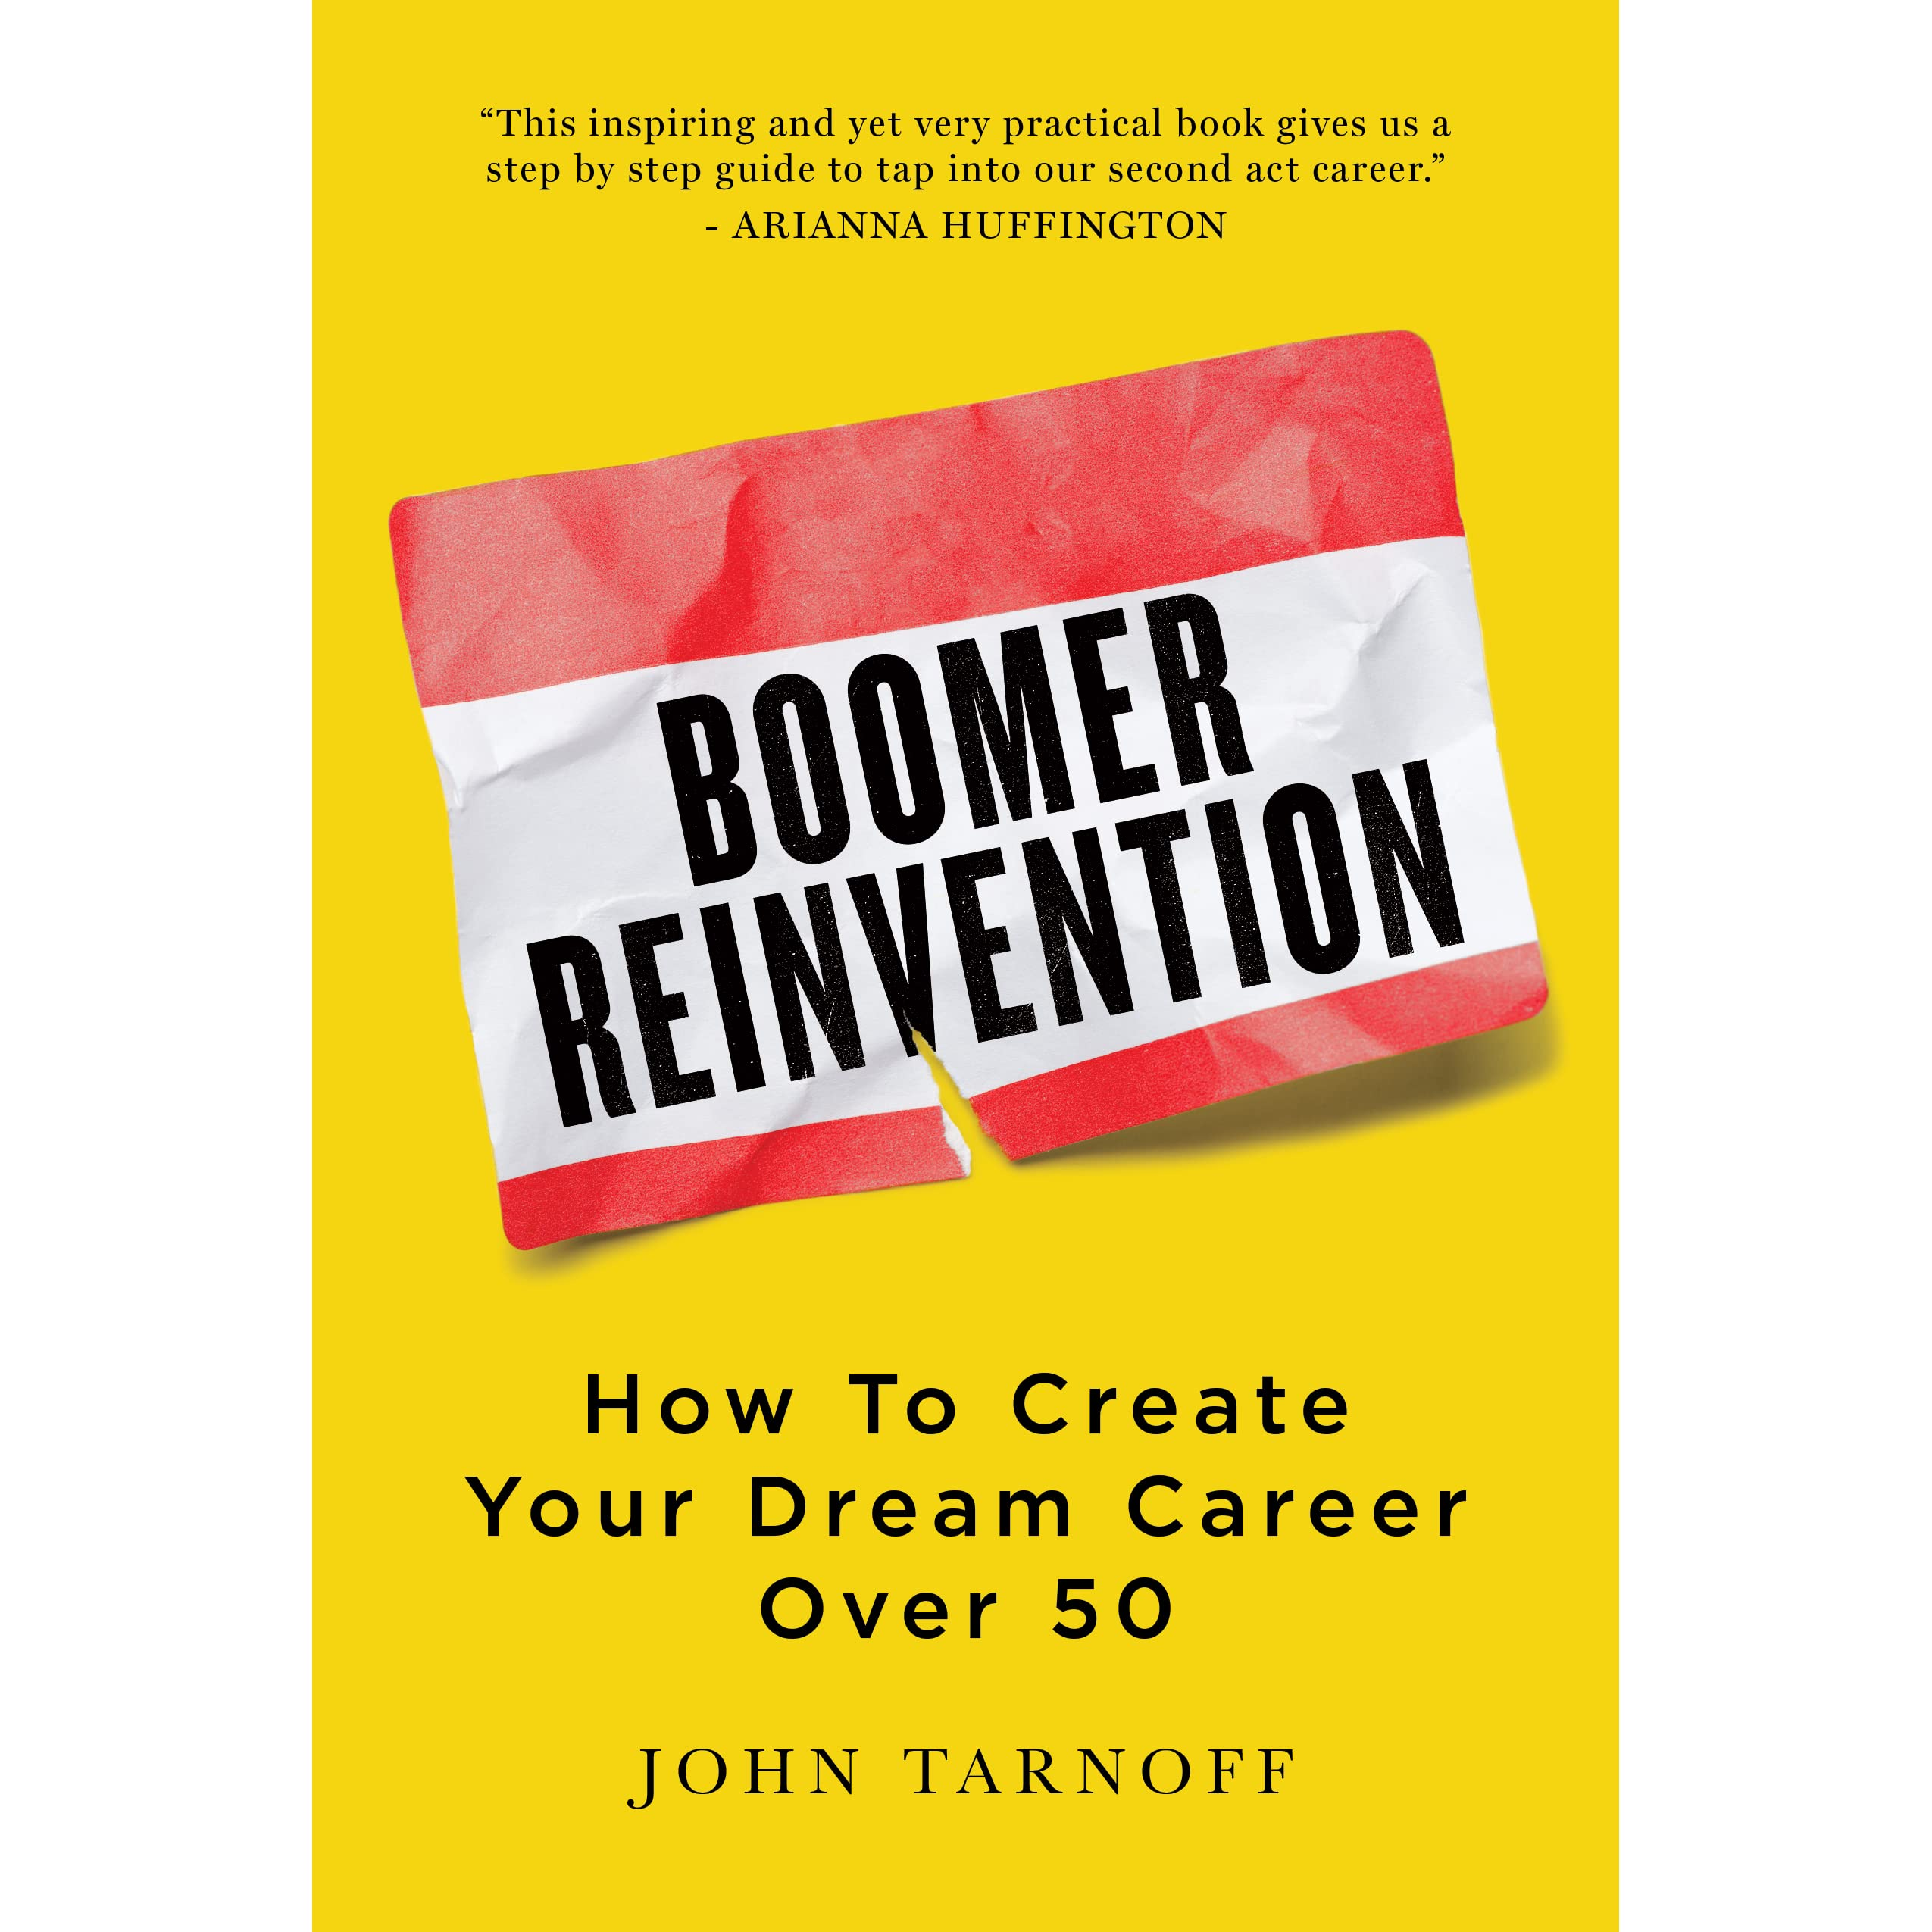 Boomer Reinvention: How To Create Your Dream Career Over 50 By John Tarnoff  €� Reviews